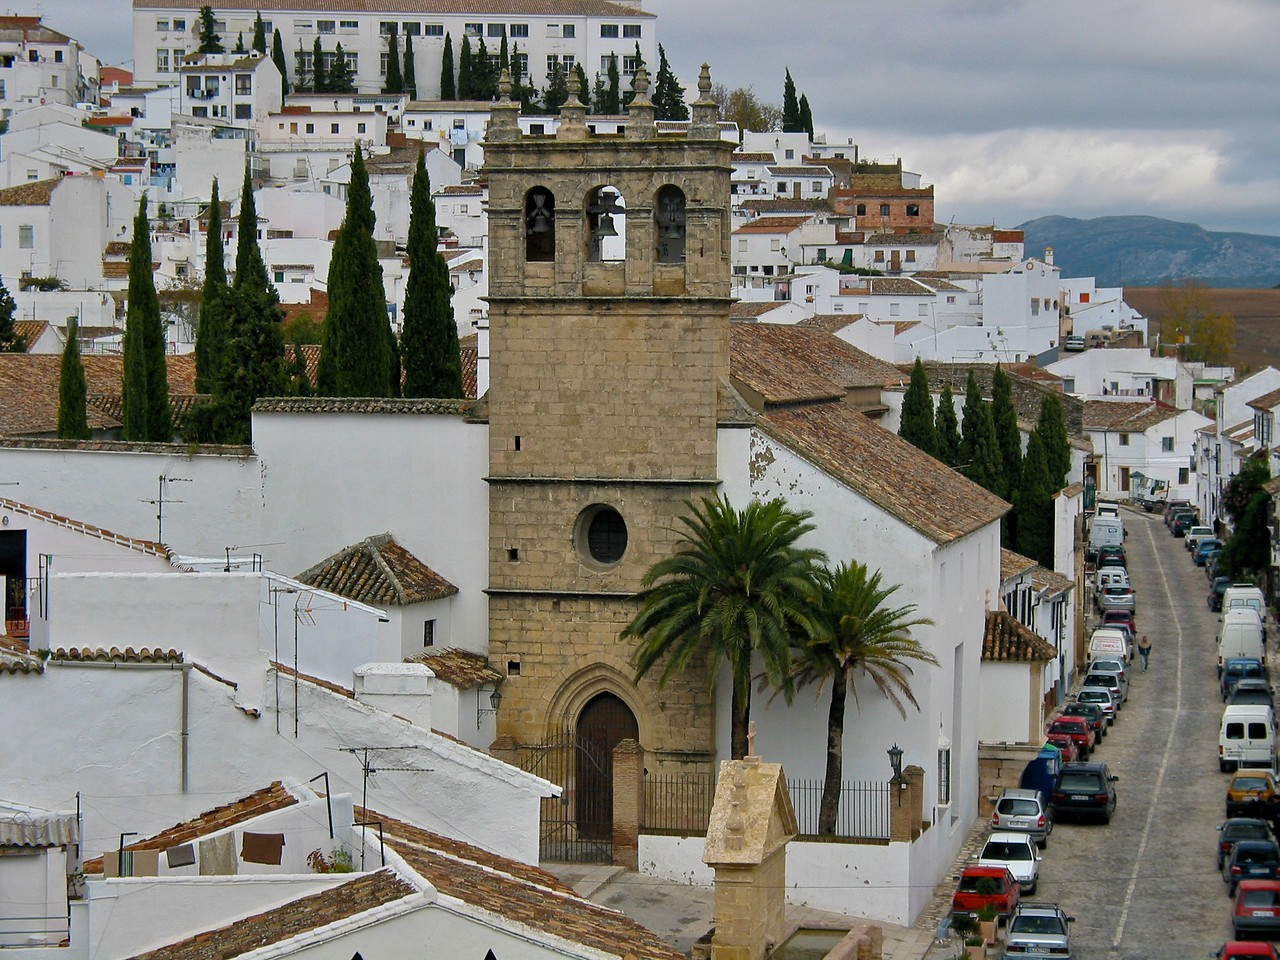 Ernest Hemingway and Orson Welles spent many summers in Ronda as part-time residents of Ronda's old town quarter called La Ciudad.